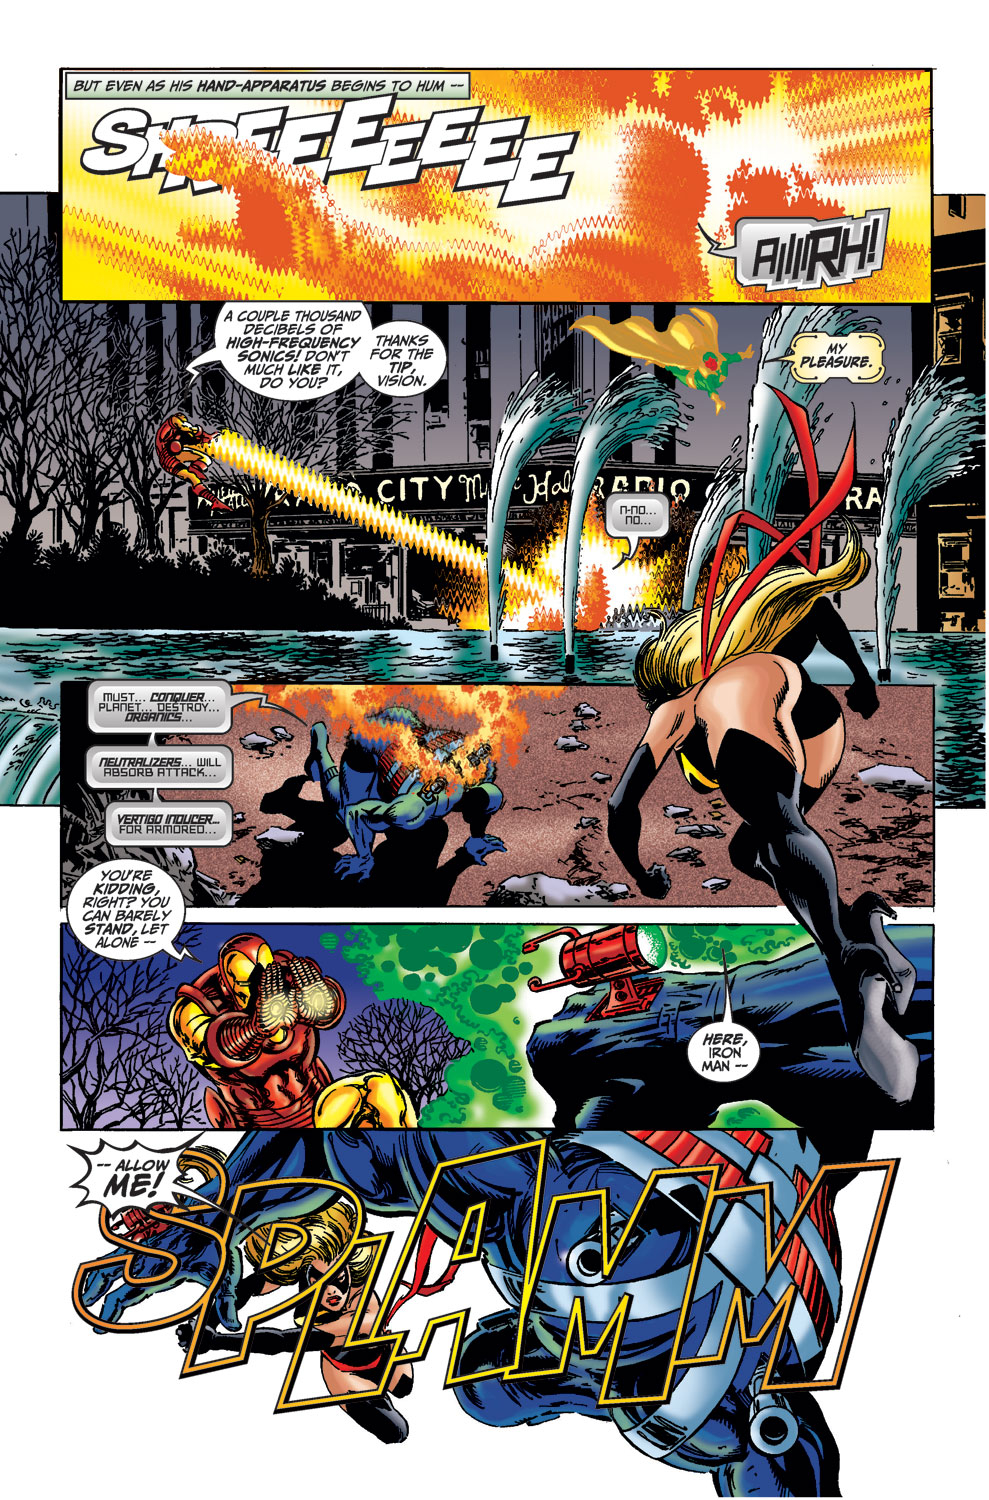 With no strain Iron Man releases high-frequency sonics equal to at least 2,000 fricken DECIBELS. This feat is legit slept on(I'm just gonna say IRL this would've been a lot more catastrophic) -Avengers(1998)